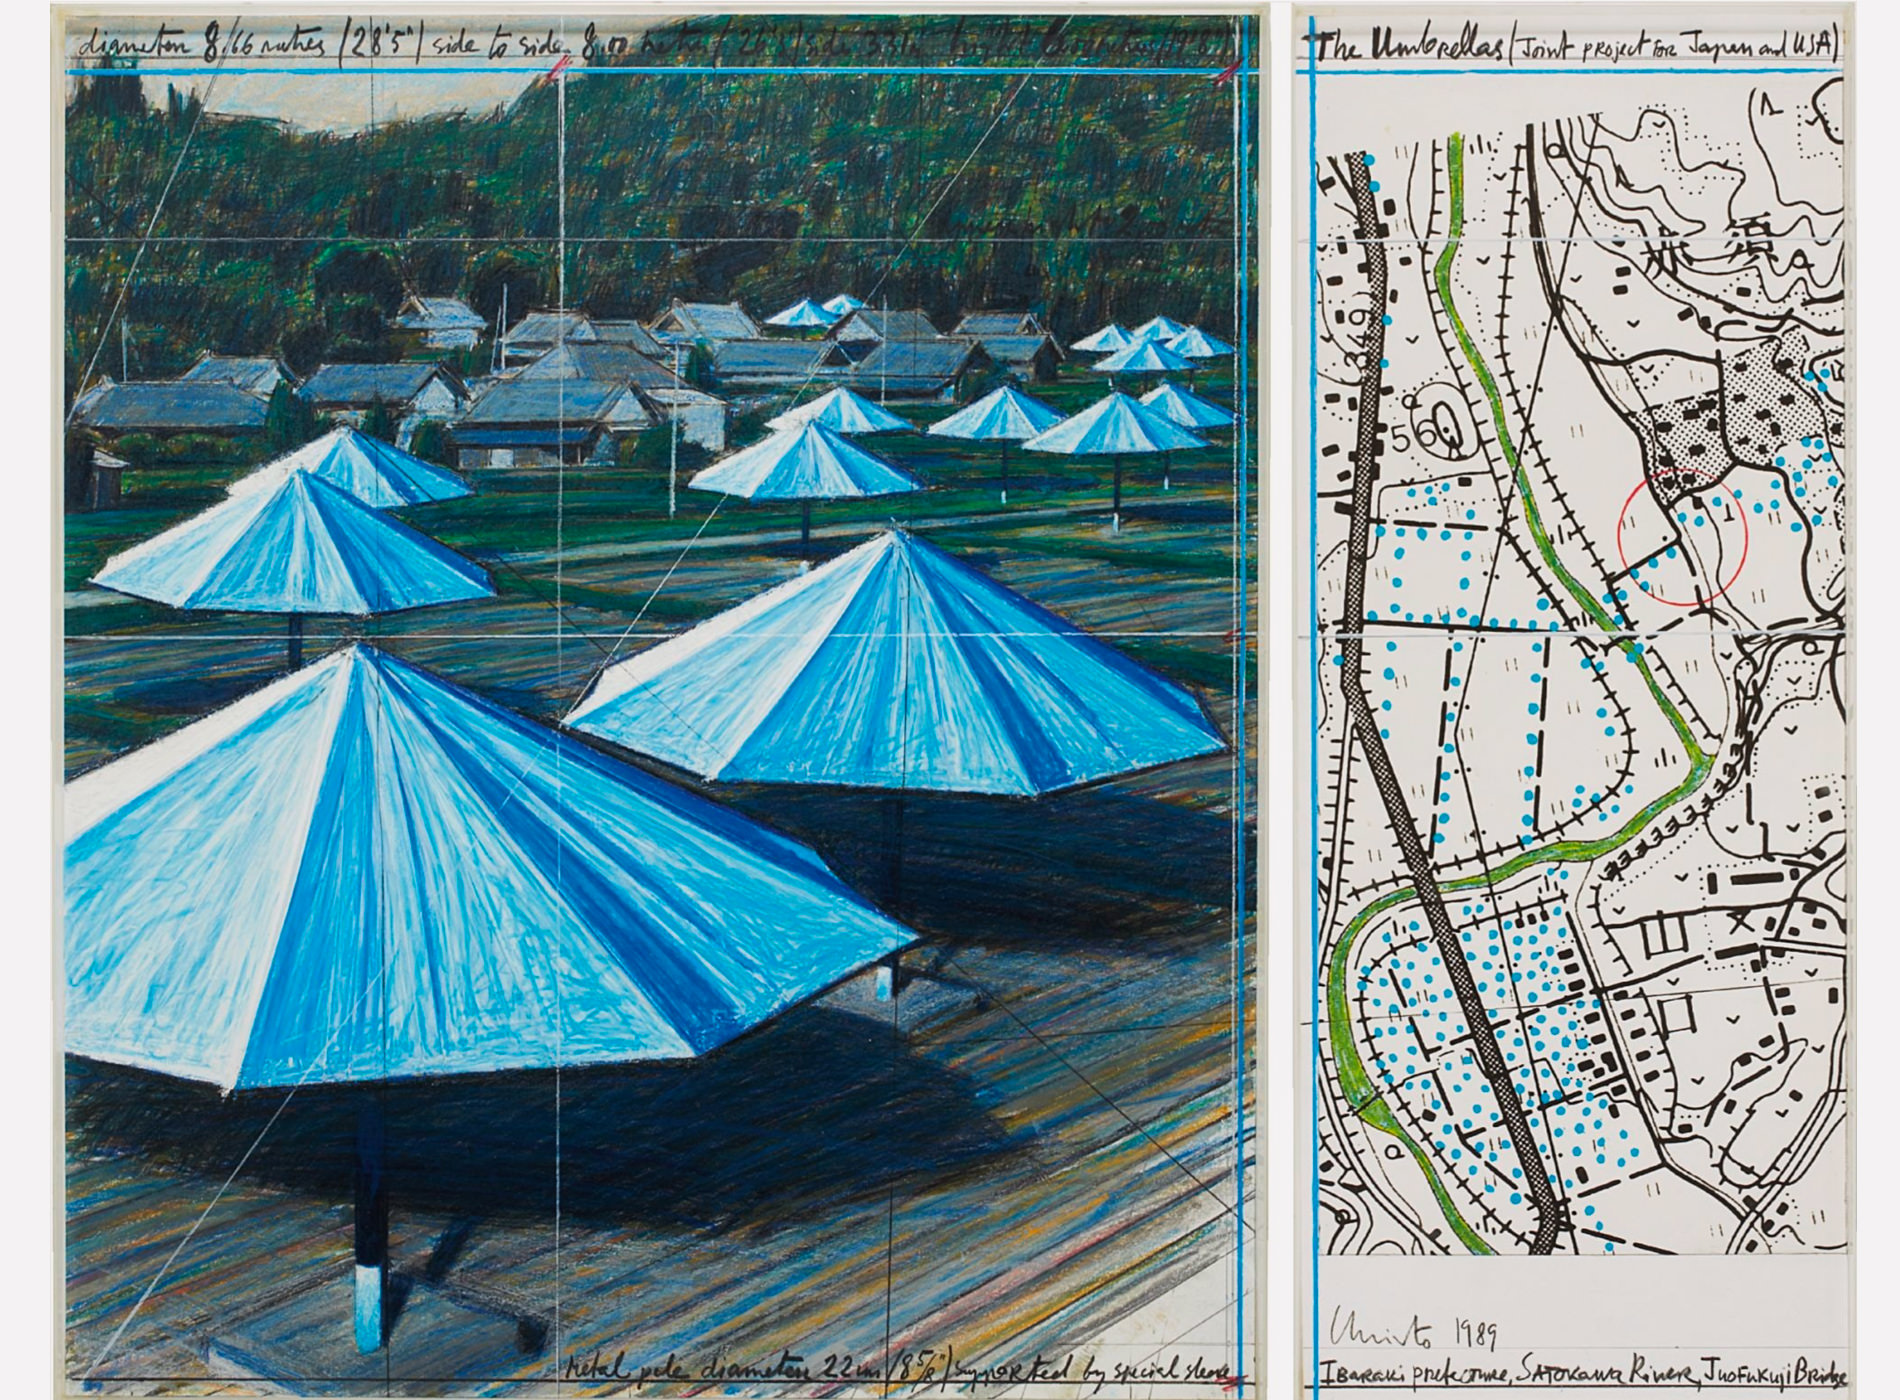 Christo. The Umbrellas, 1989